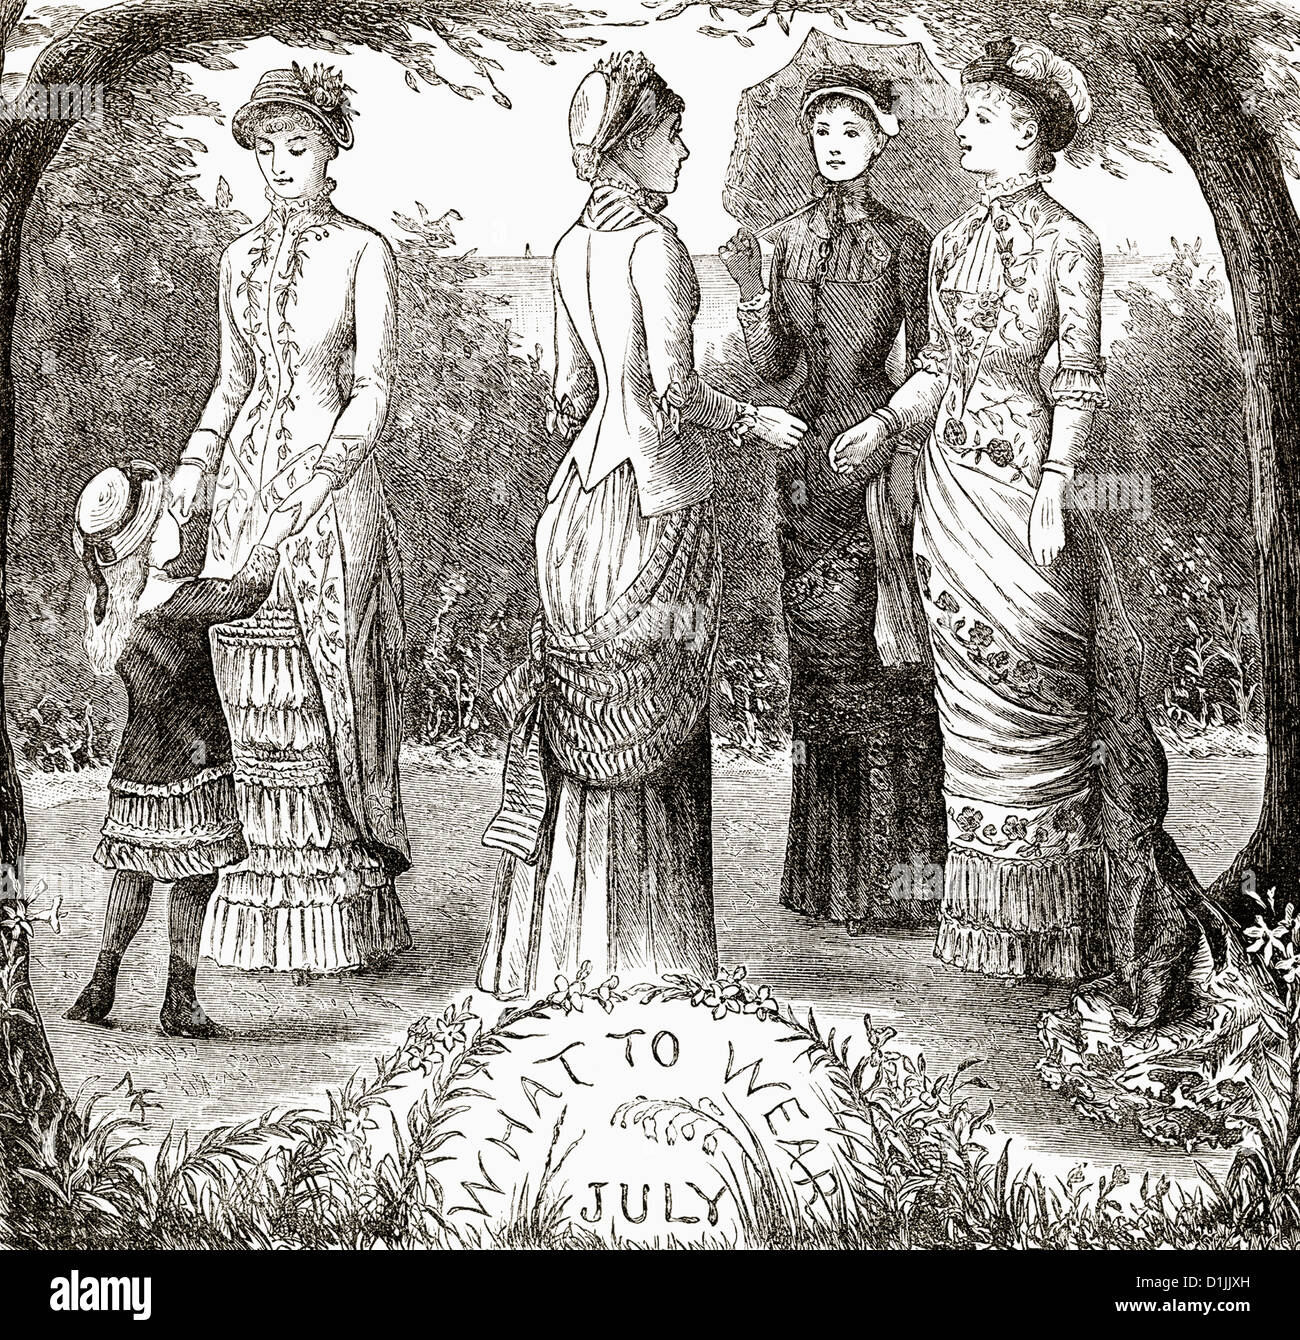 Historical drawing from England, 19th century, women's fashion around 1881, - Stock Image